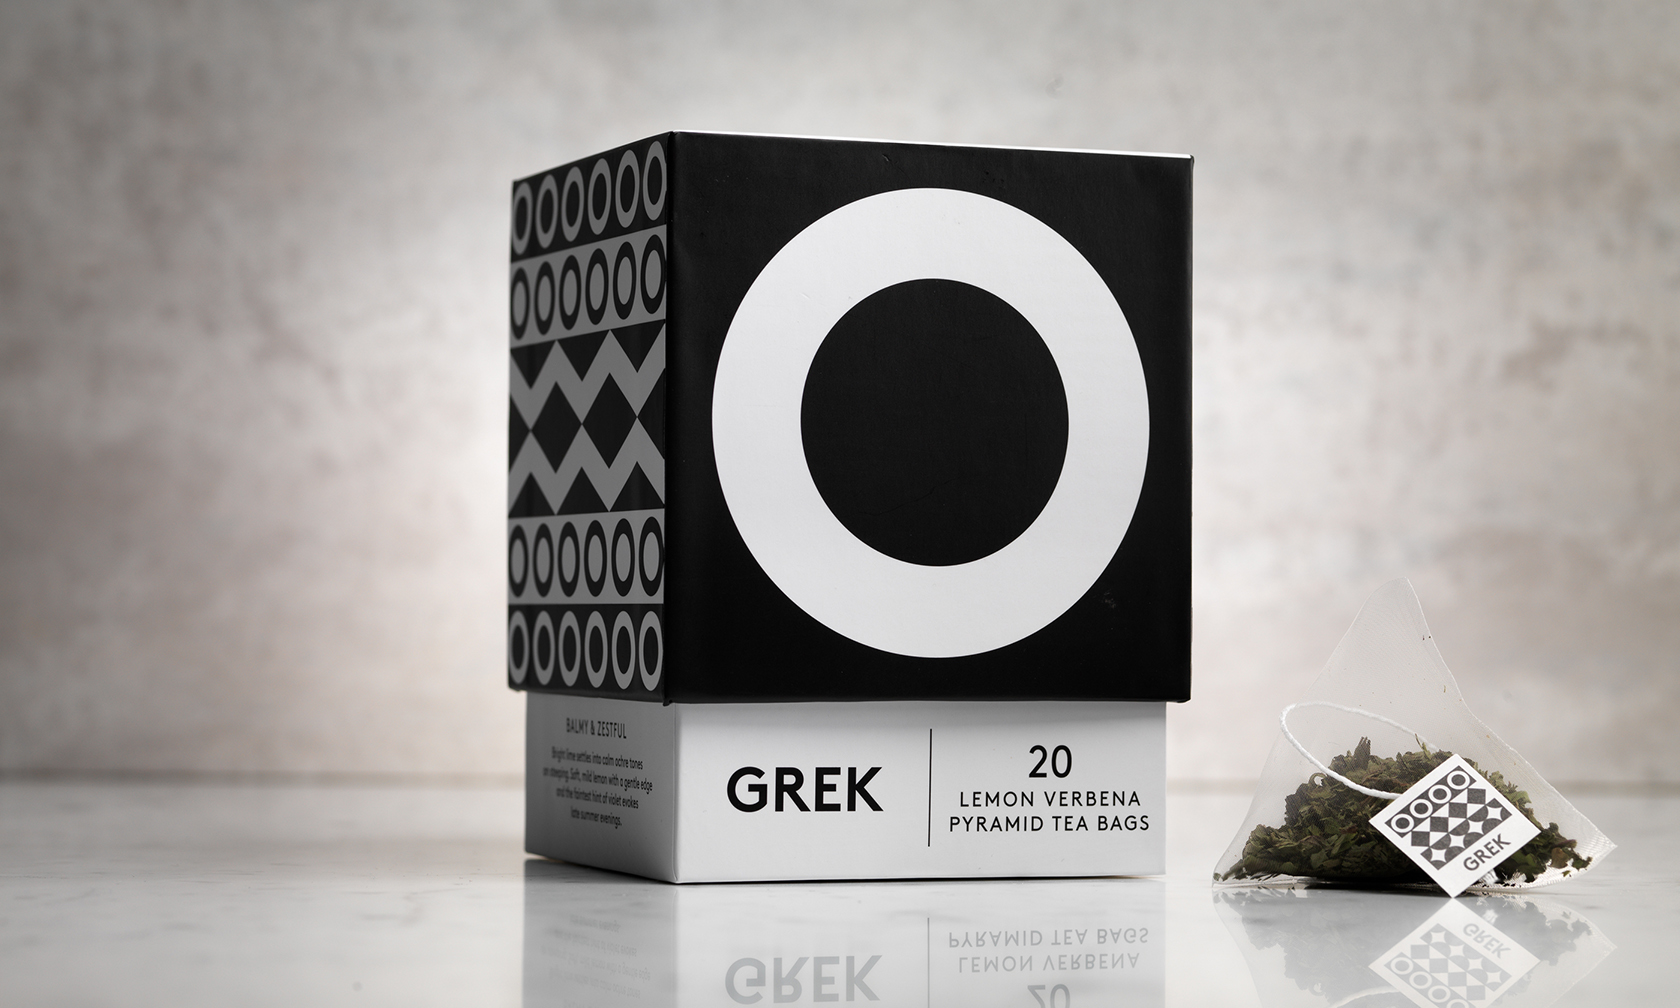 Branding and Packaging Design Imported High Quality Herbs from Greece for Tea Brand GREK / World Brand & Packaging Design Society